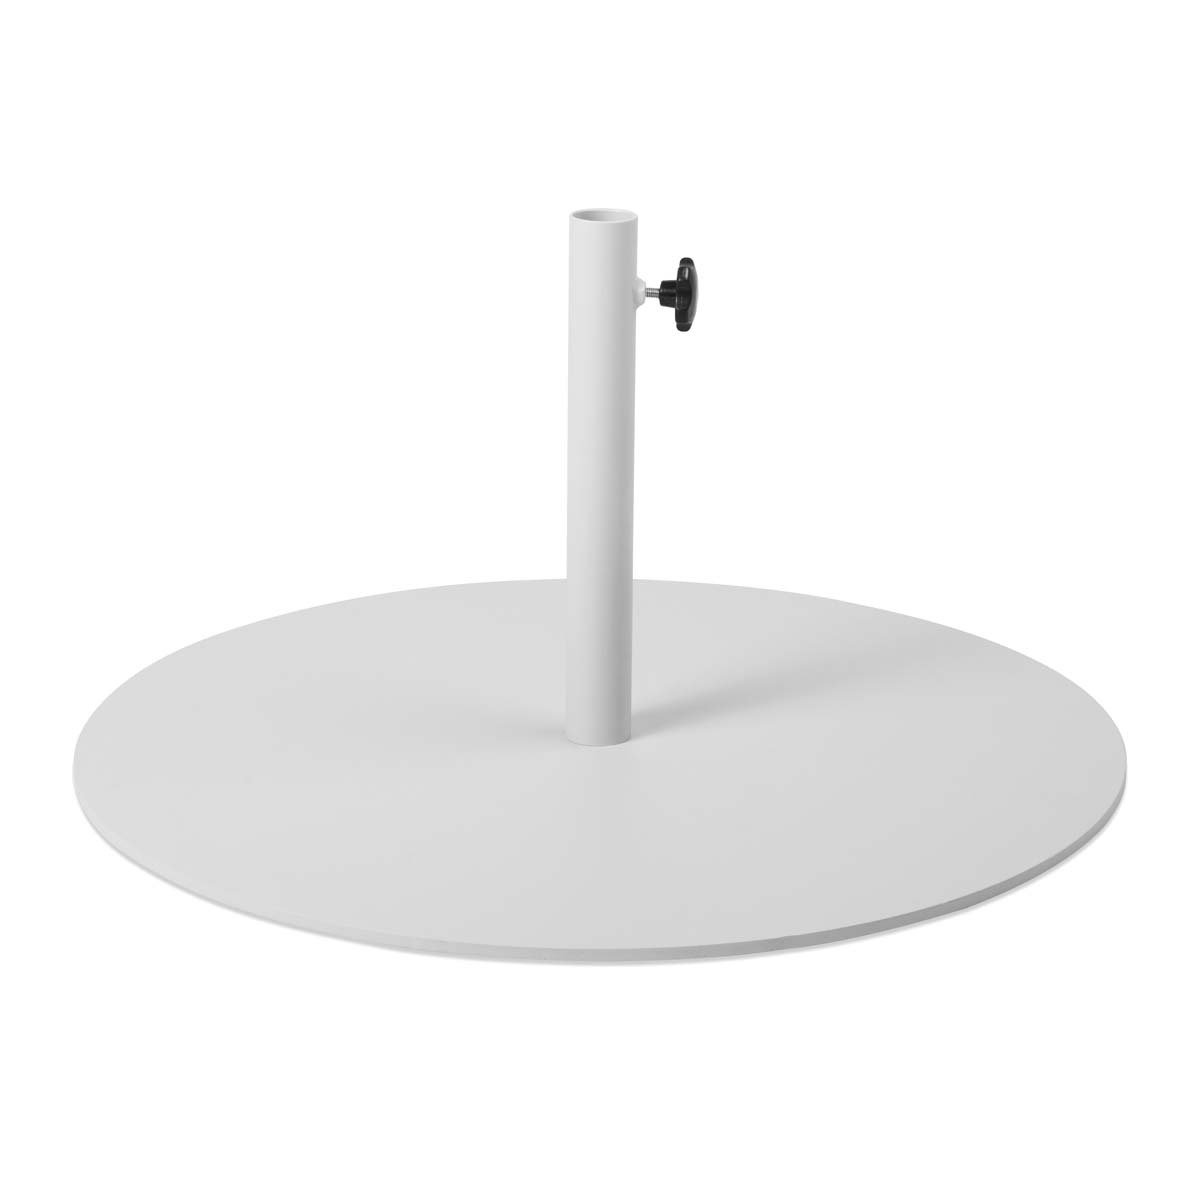 Fatboy® parasol base light grey